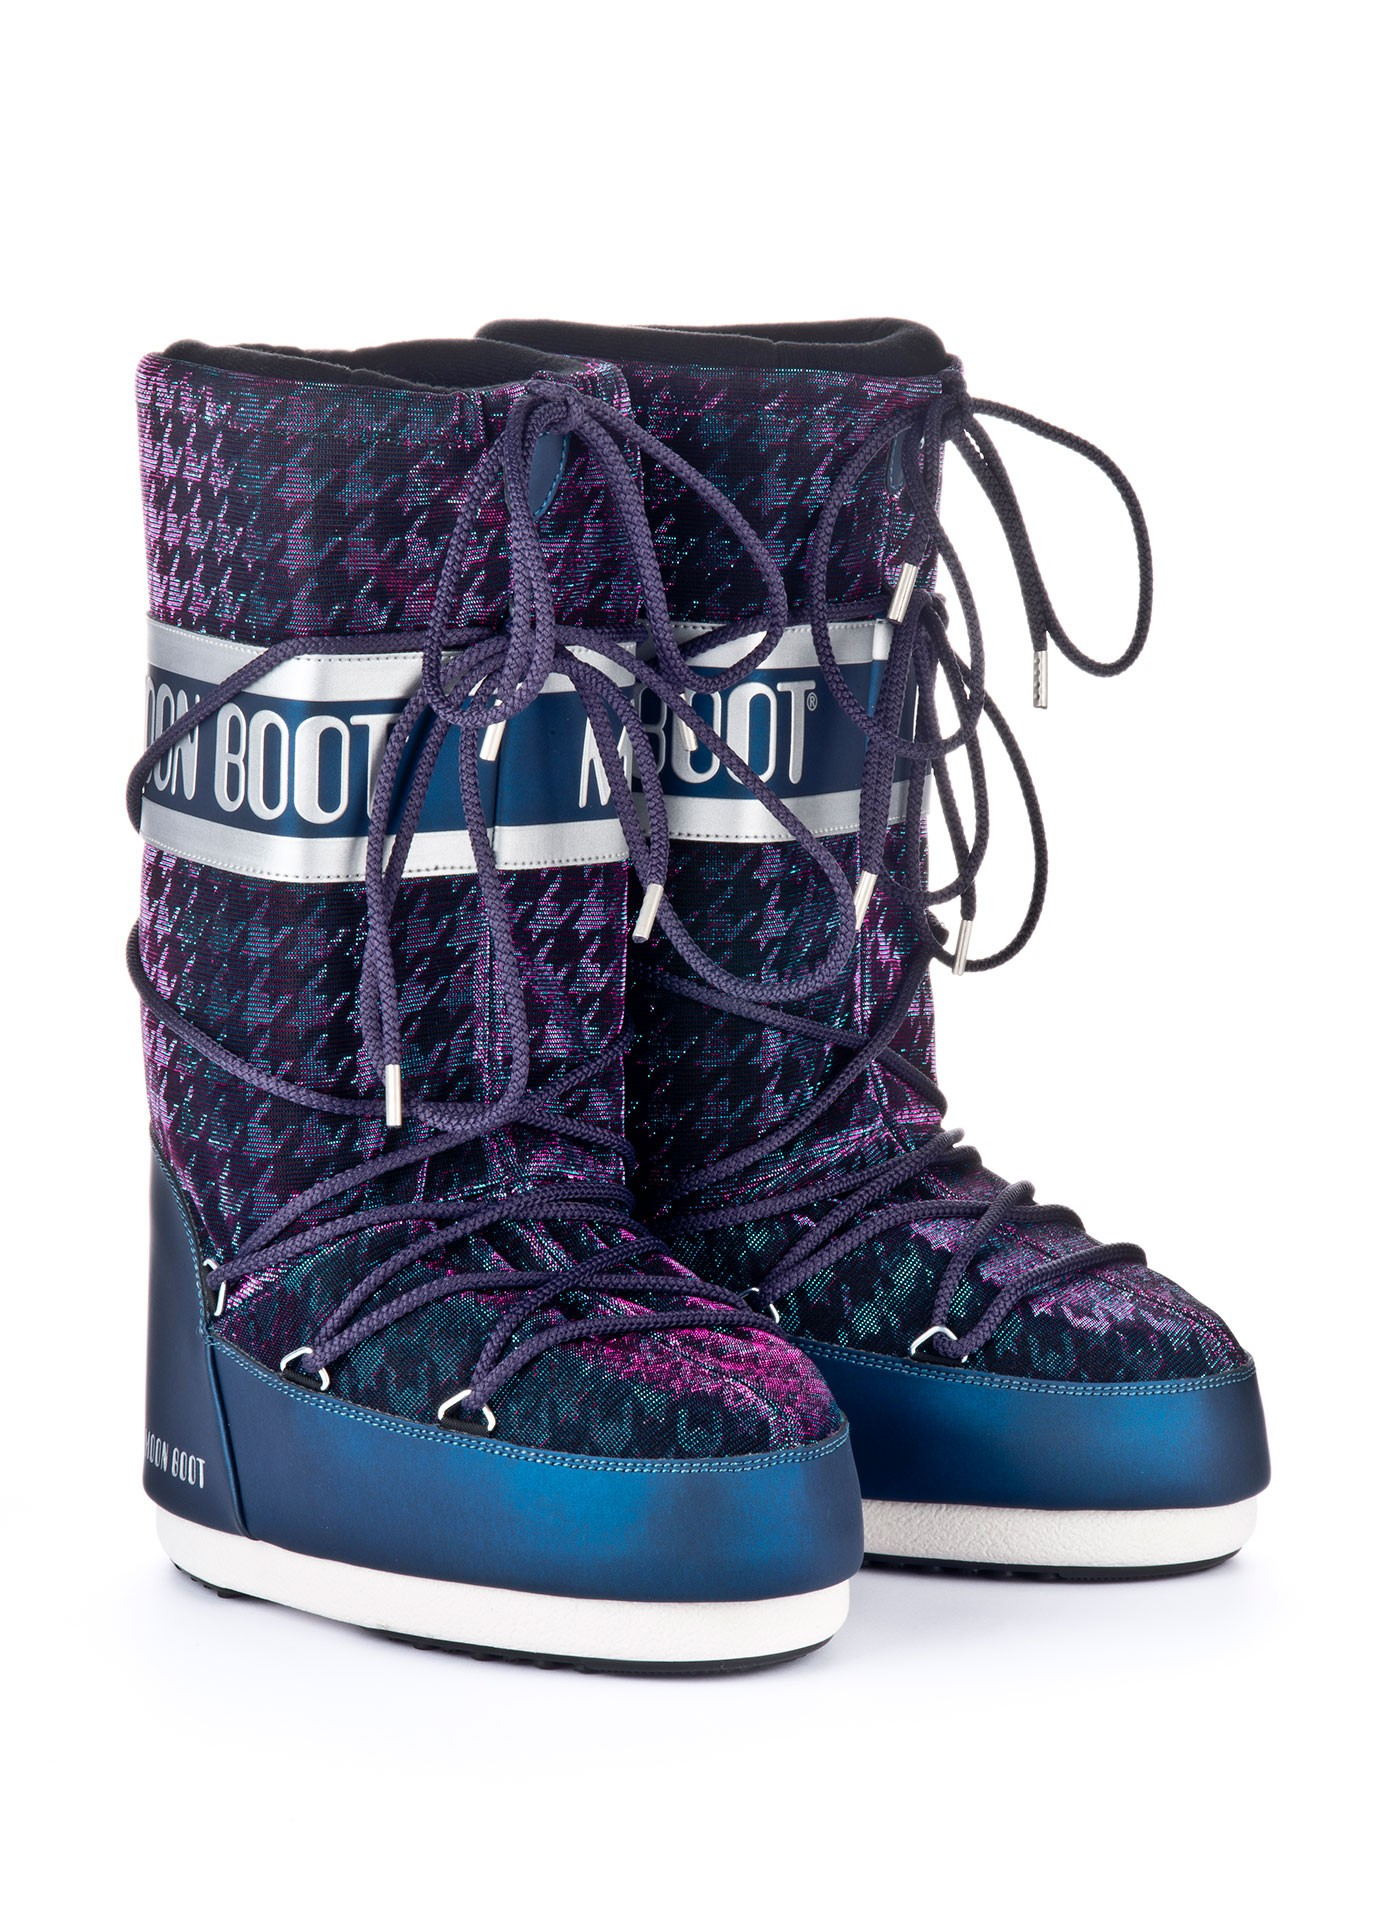 Moon boot Glam blue silver